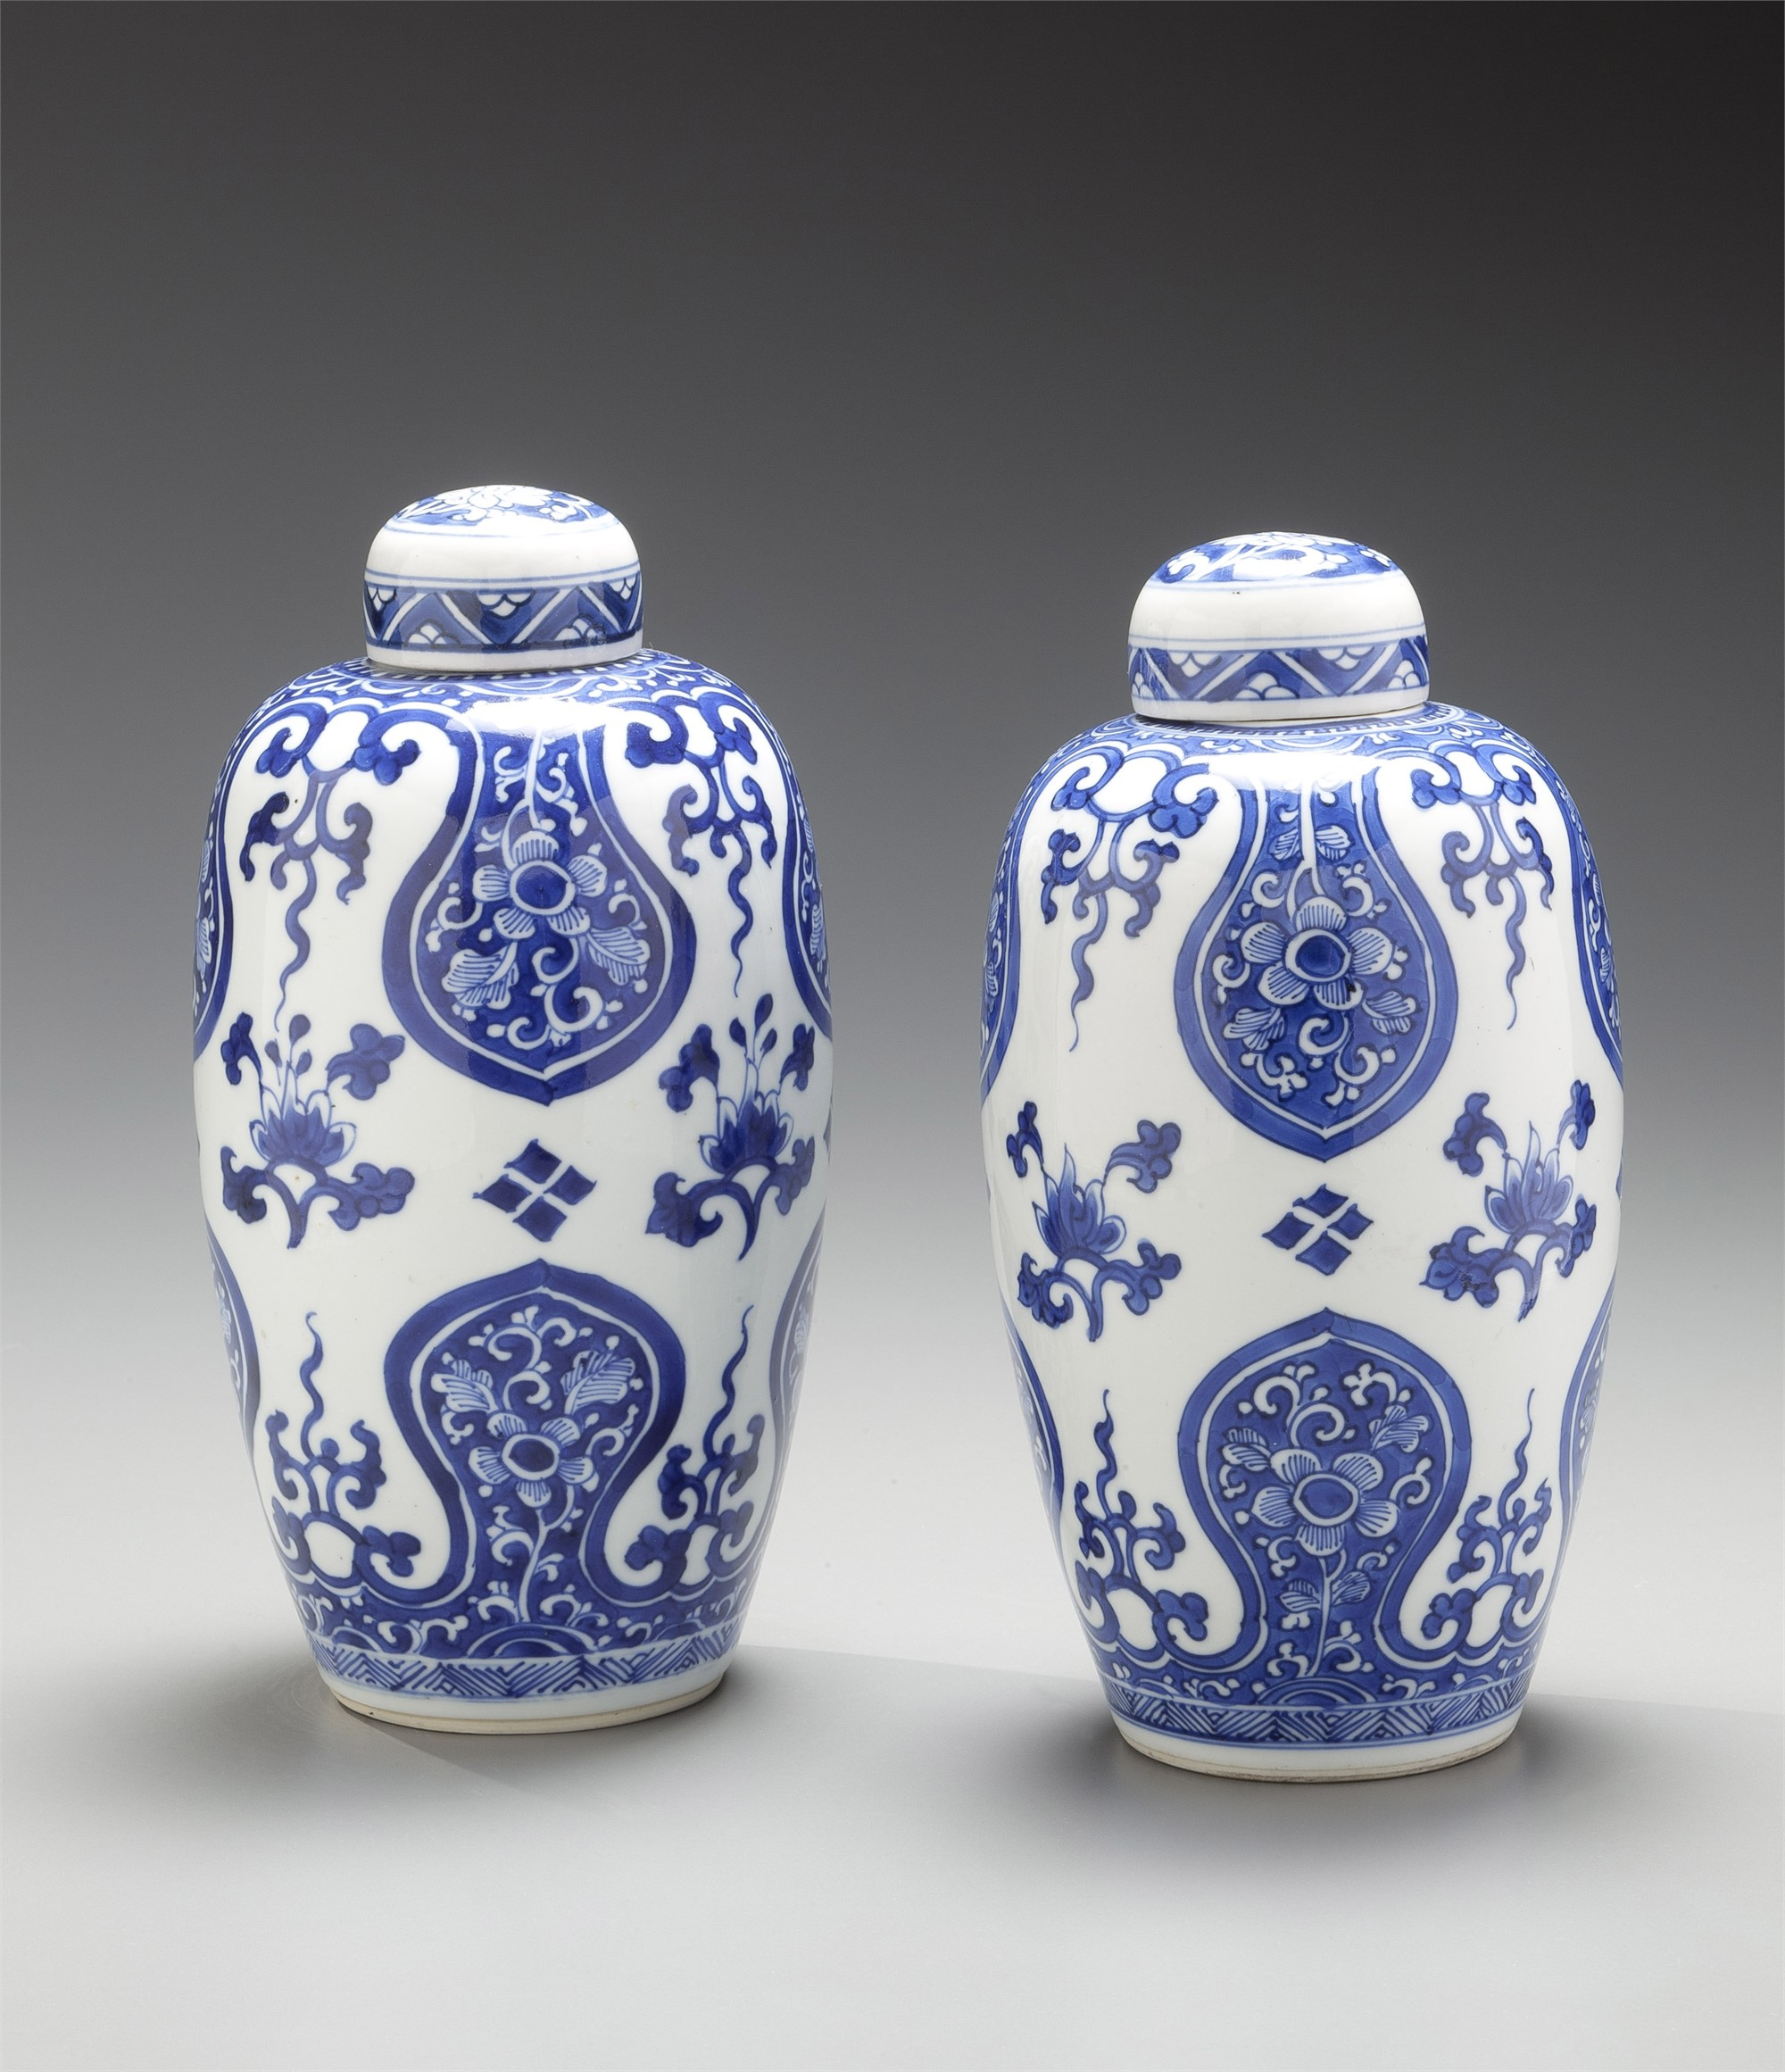 PAIR OF BLUE AND WHITE OVOID JARS AND COVERS